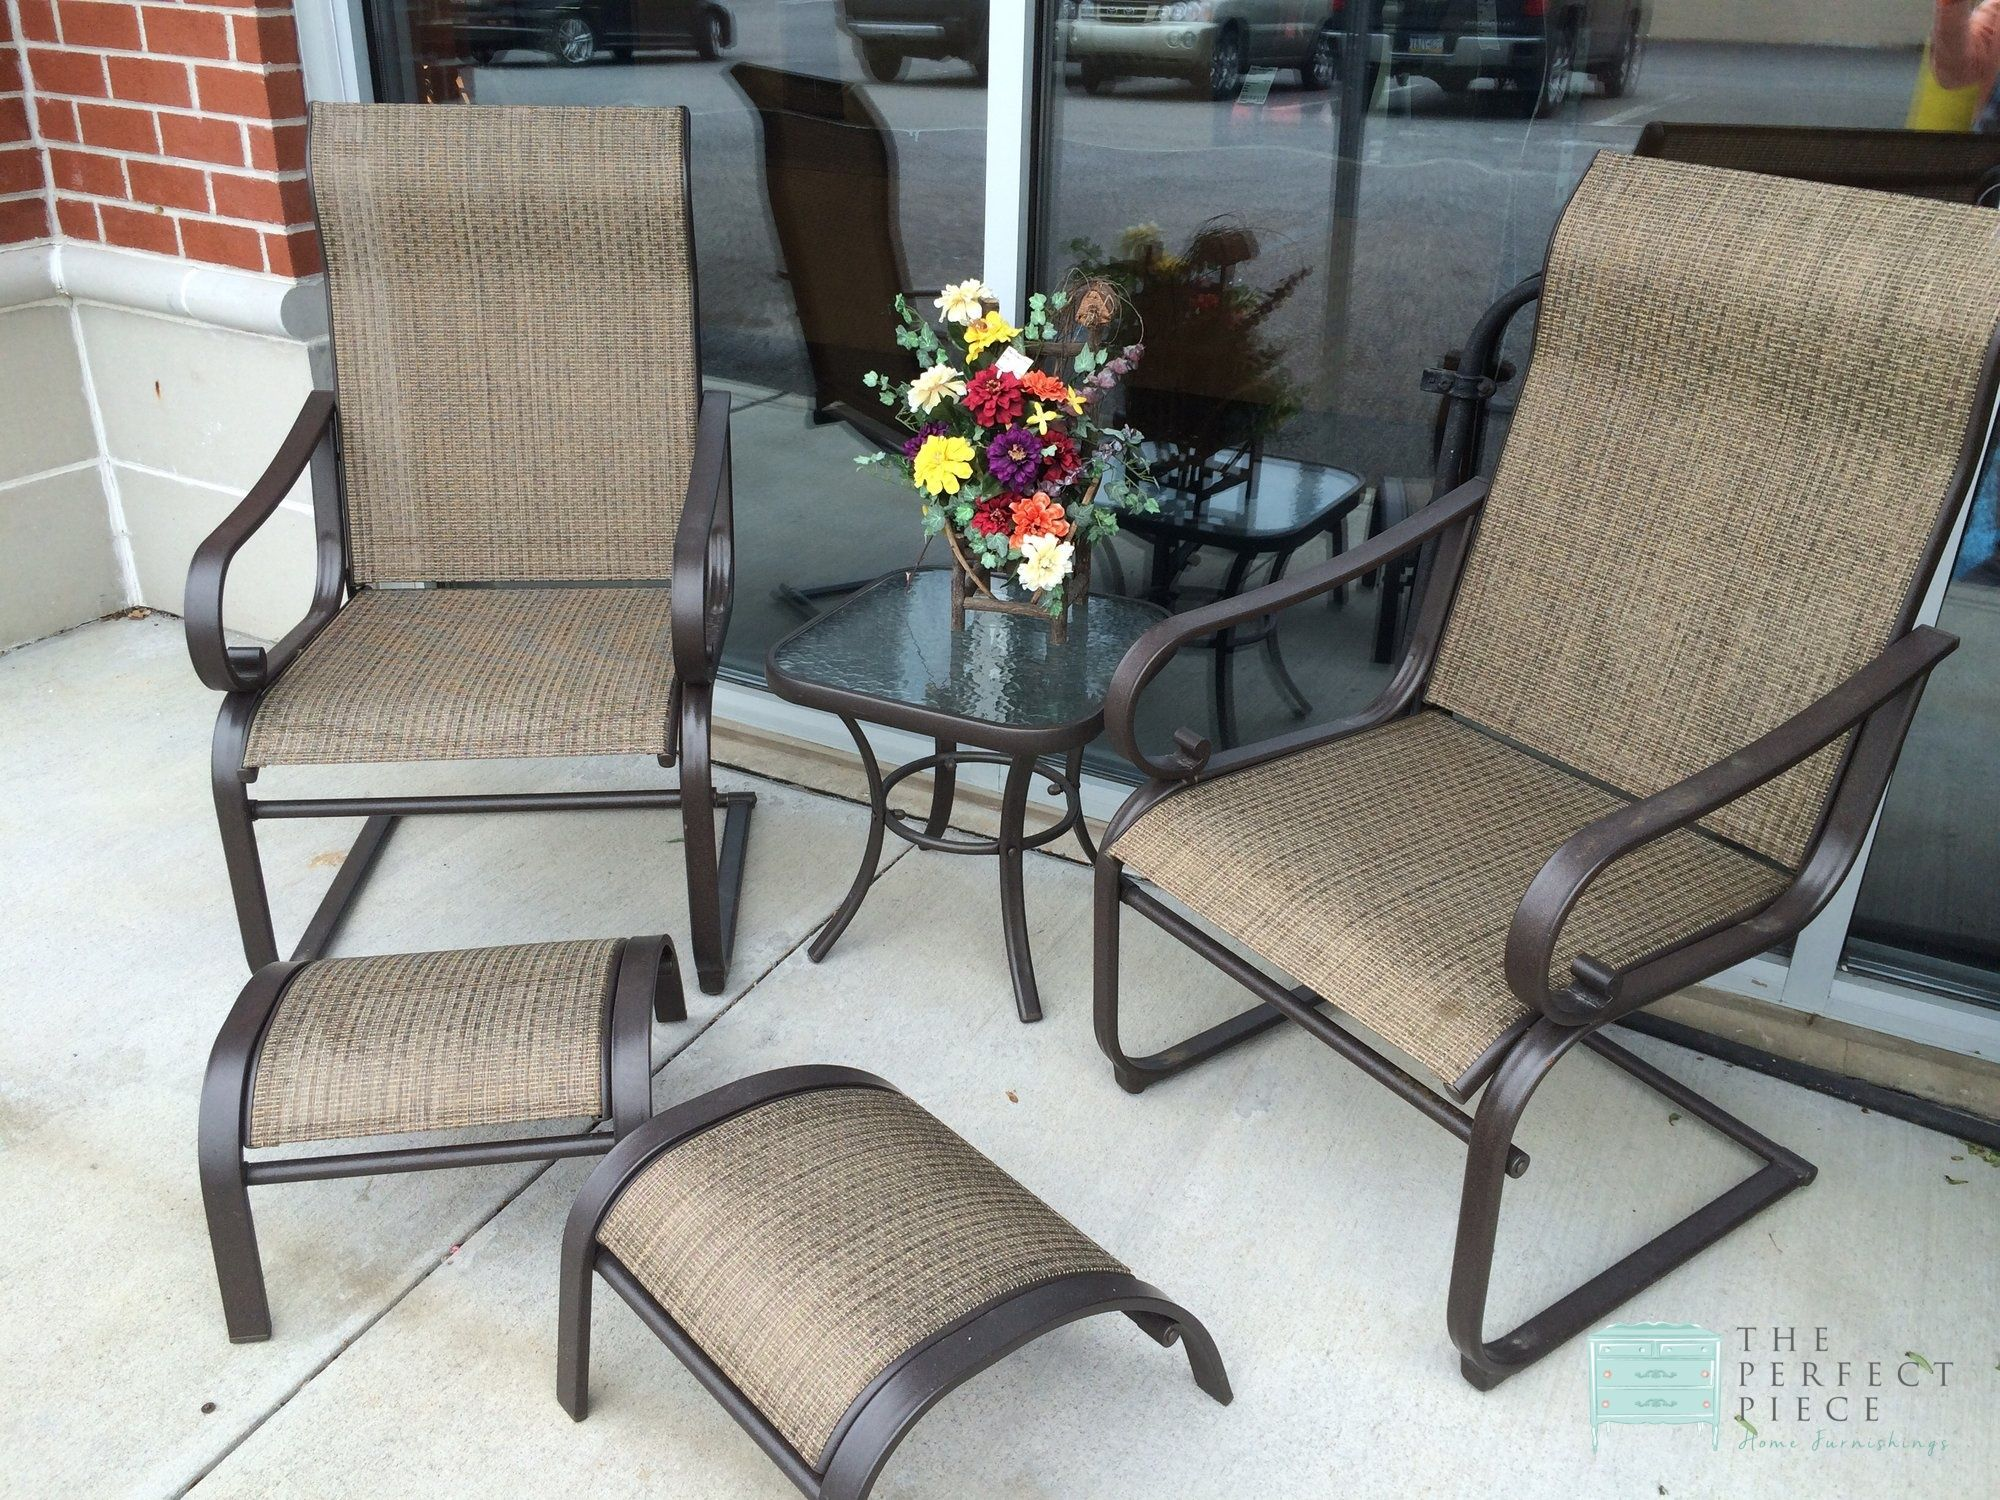 This Summer Winds Patio Set Includes 2 Chairs 2 Footstools And An Accent Table The S Patio Furniture For Sale Patio Furniture Covers Aluminum Patio Furniture